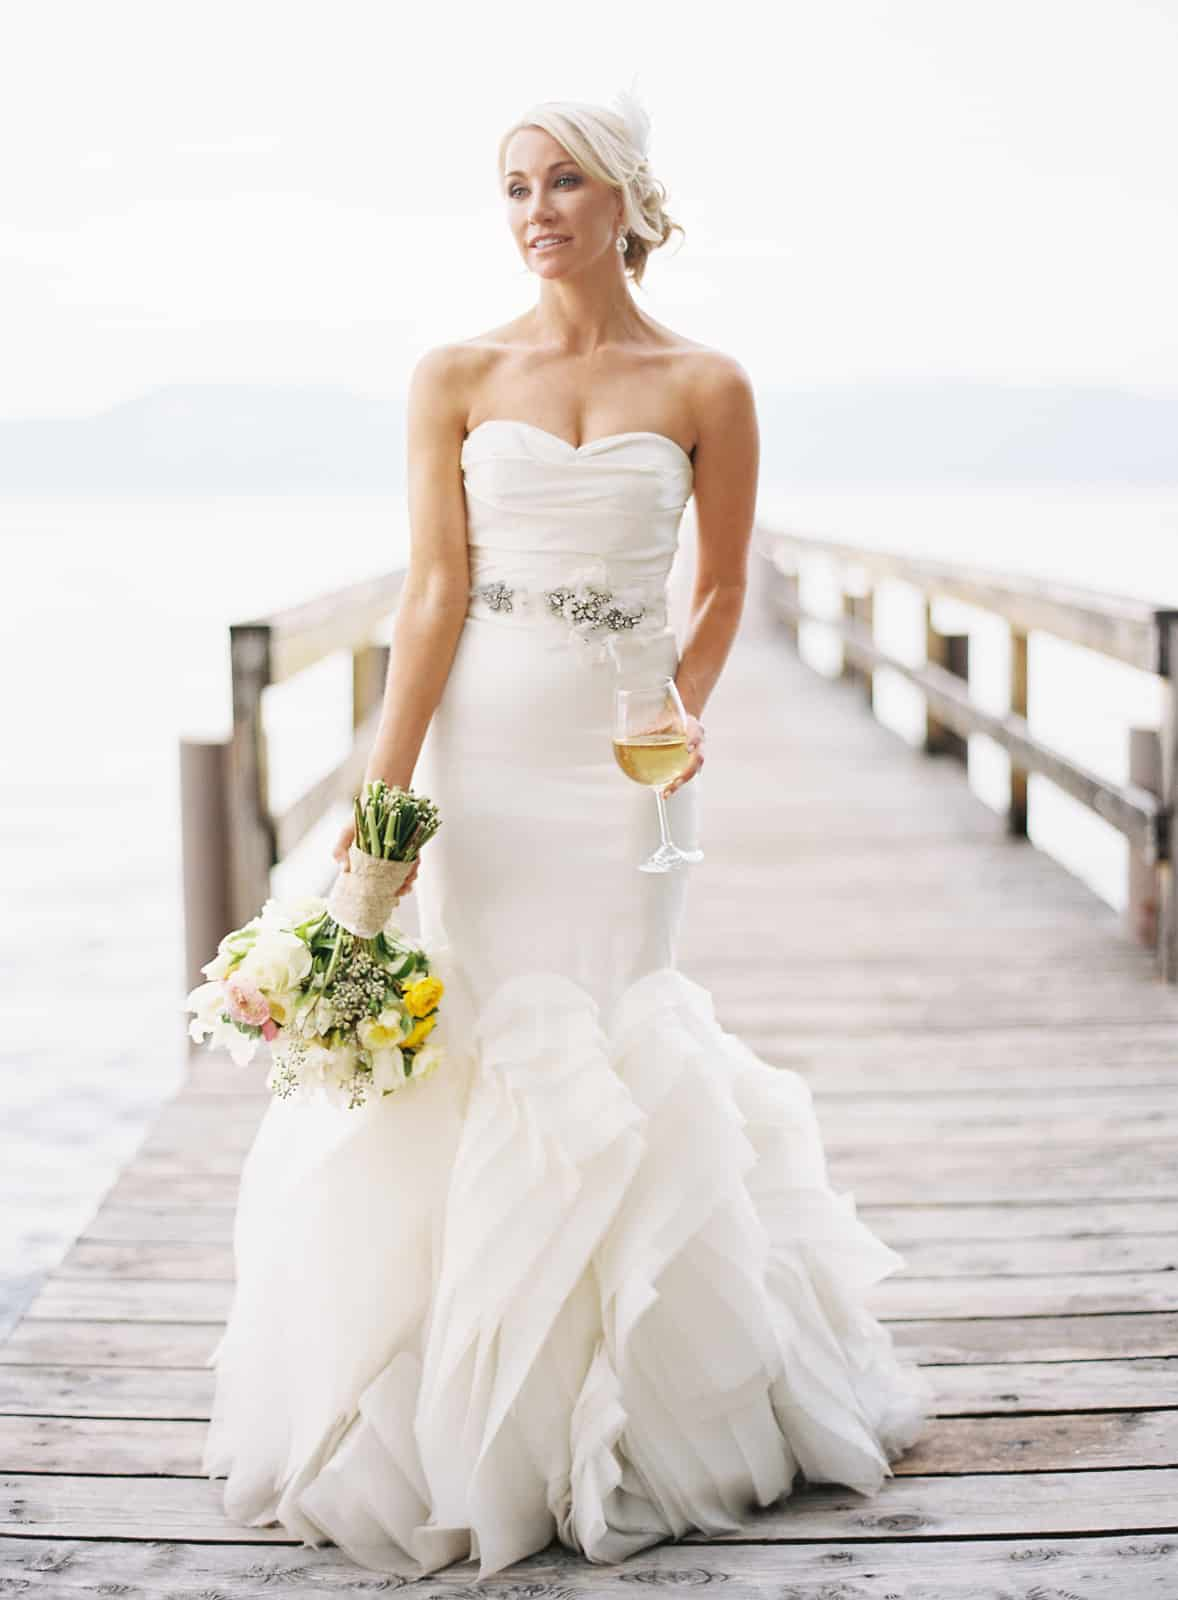 Bride in Vera Wang dress wtih white rose bouquet drinking white wine